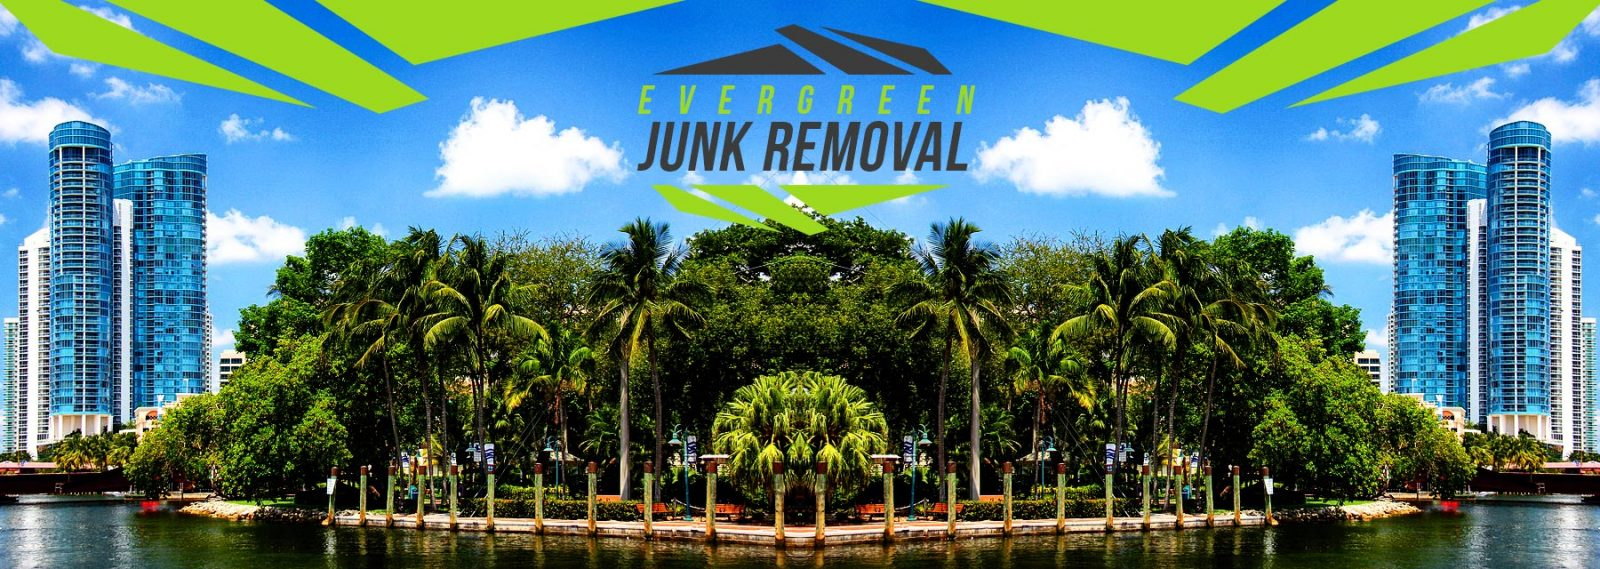 South Florida Junk Removal